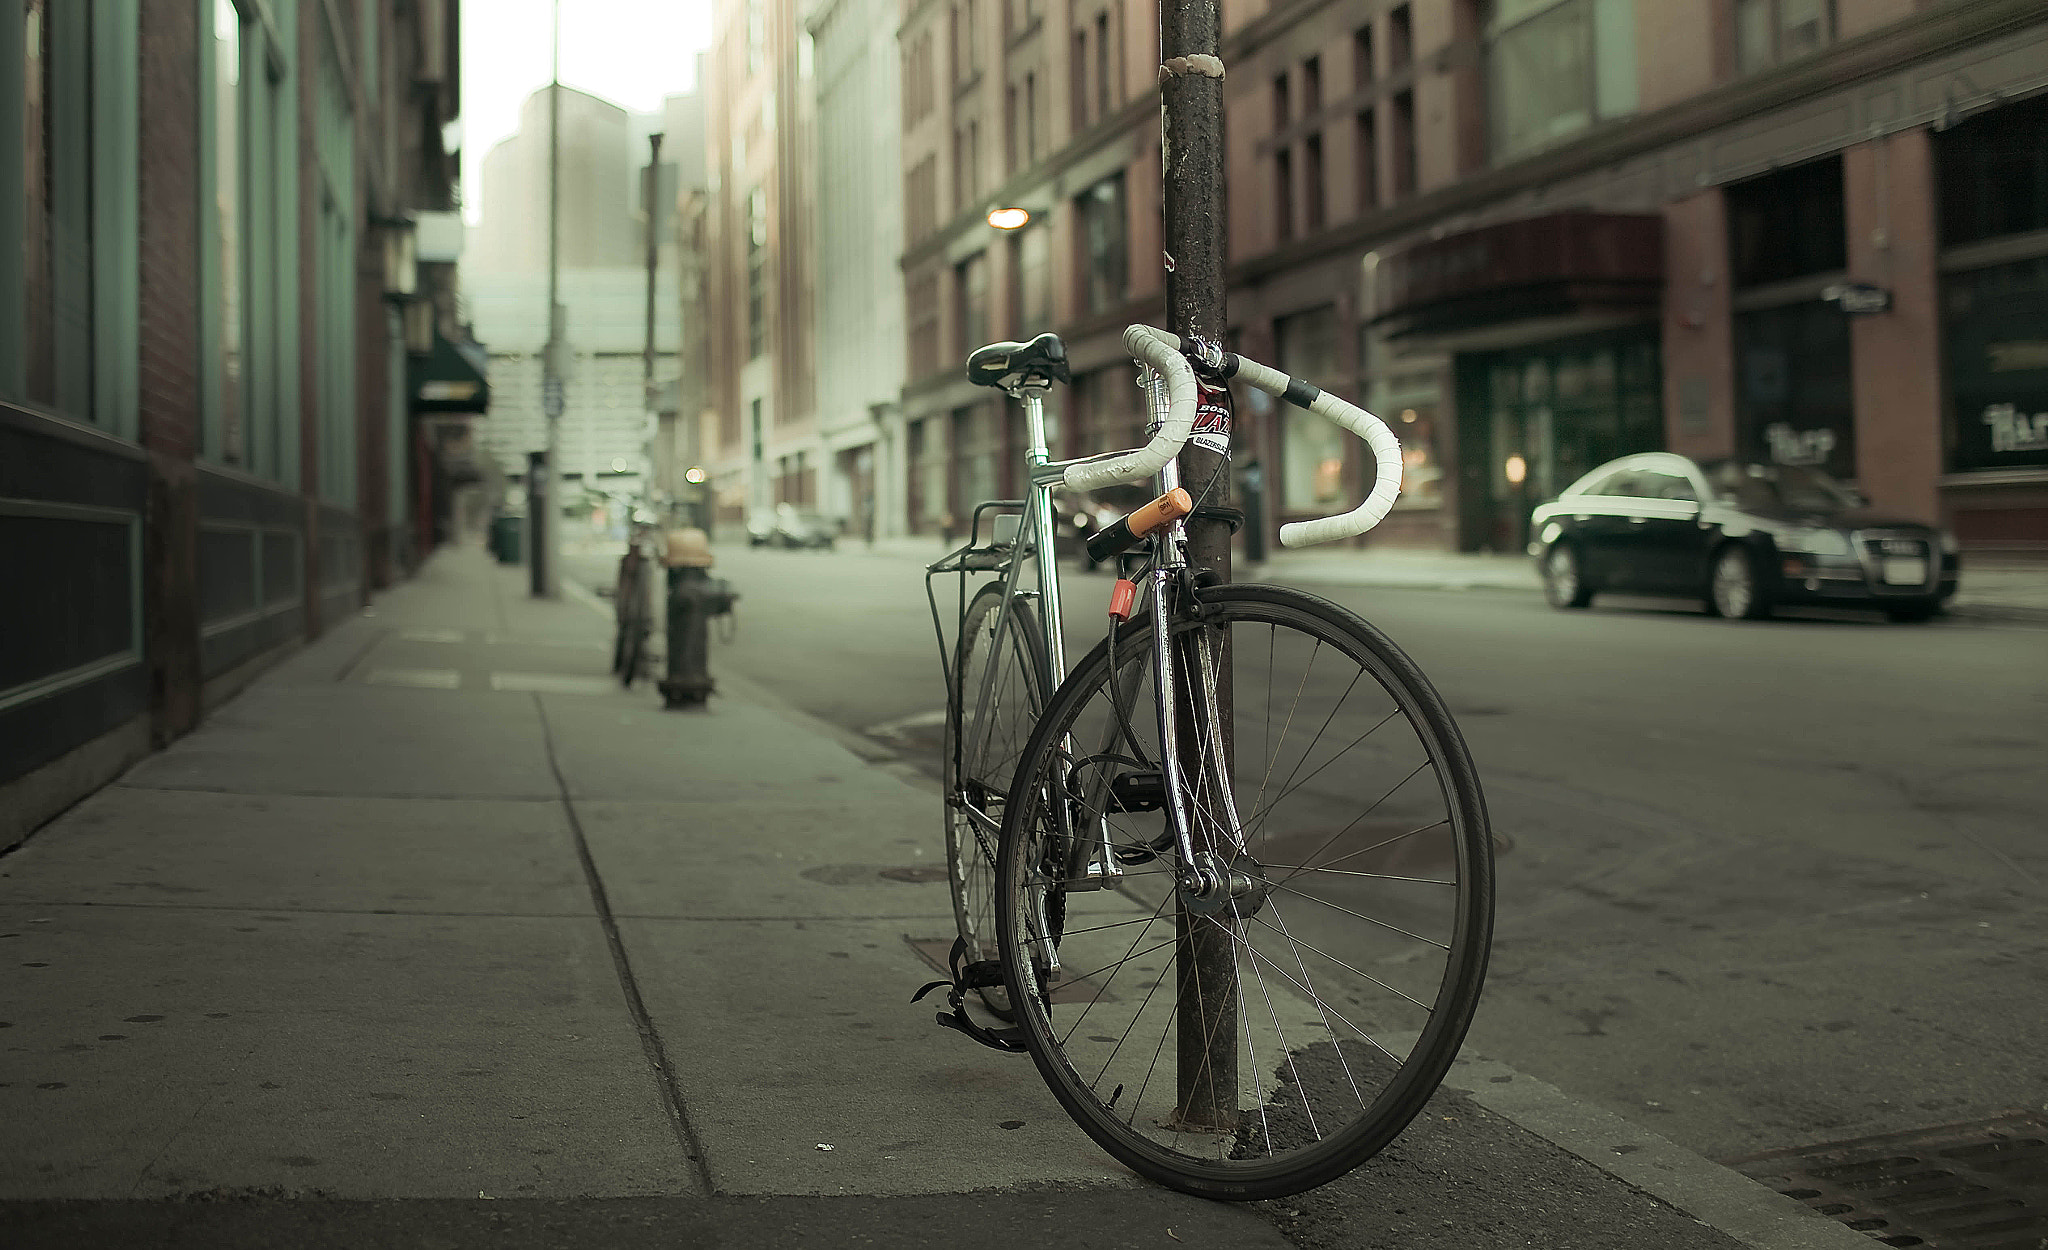 Photograph It's Just A Bike by Edward James on 500px